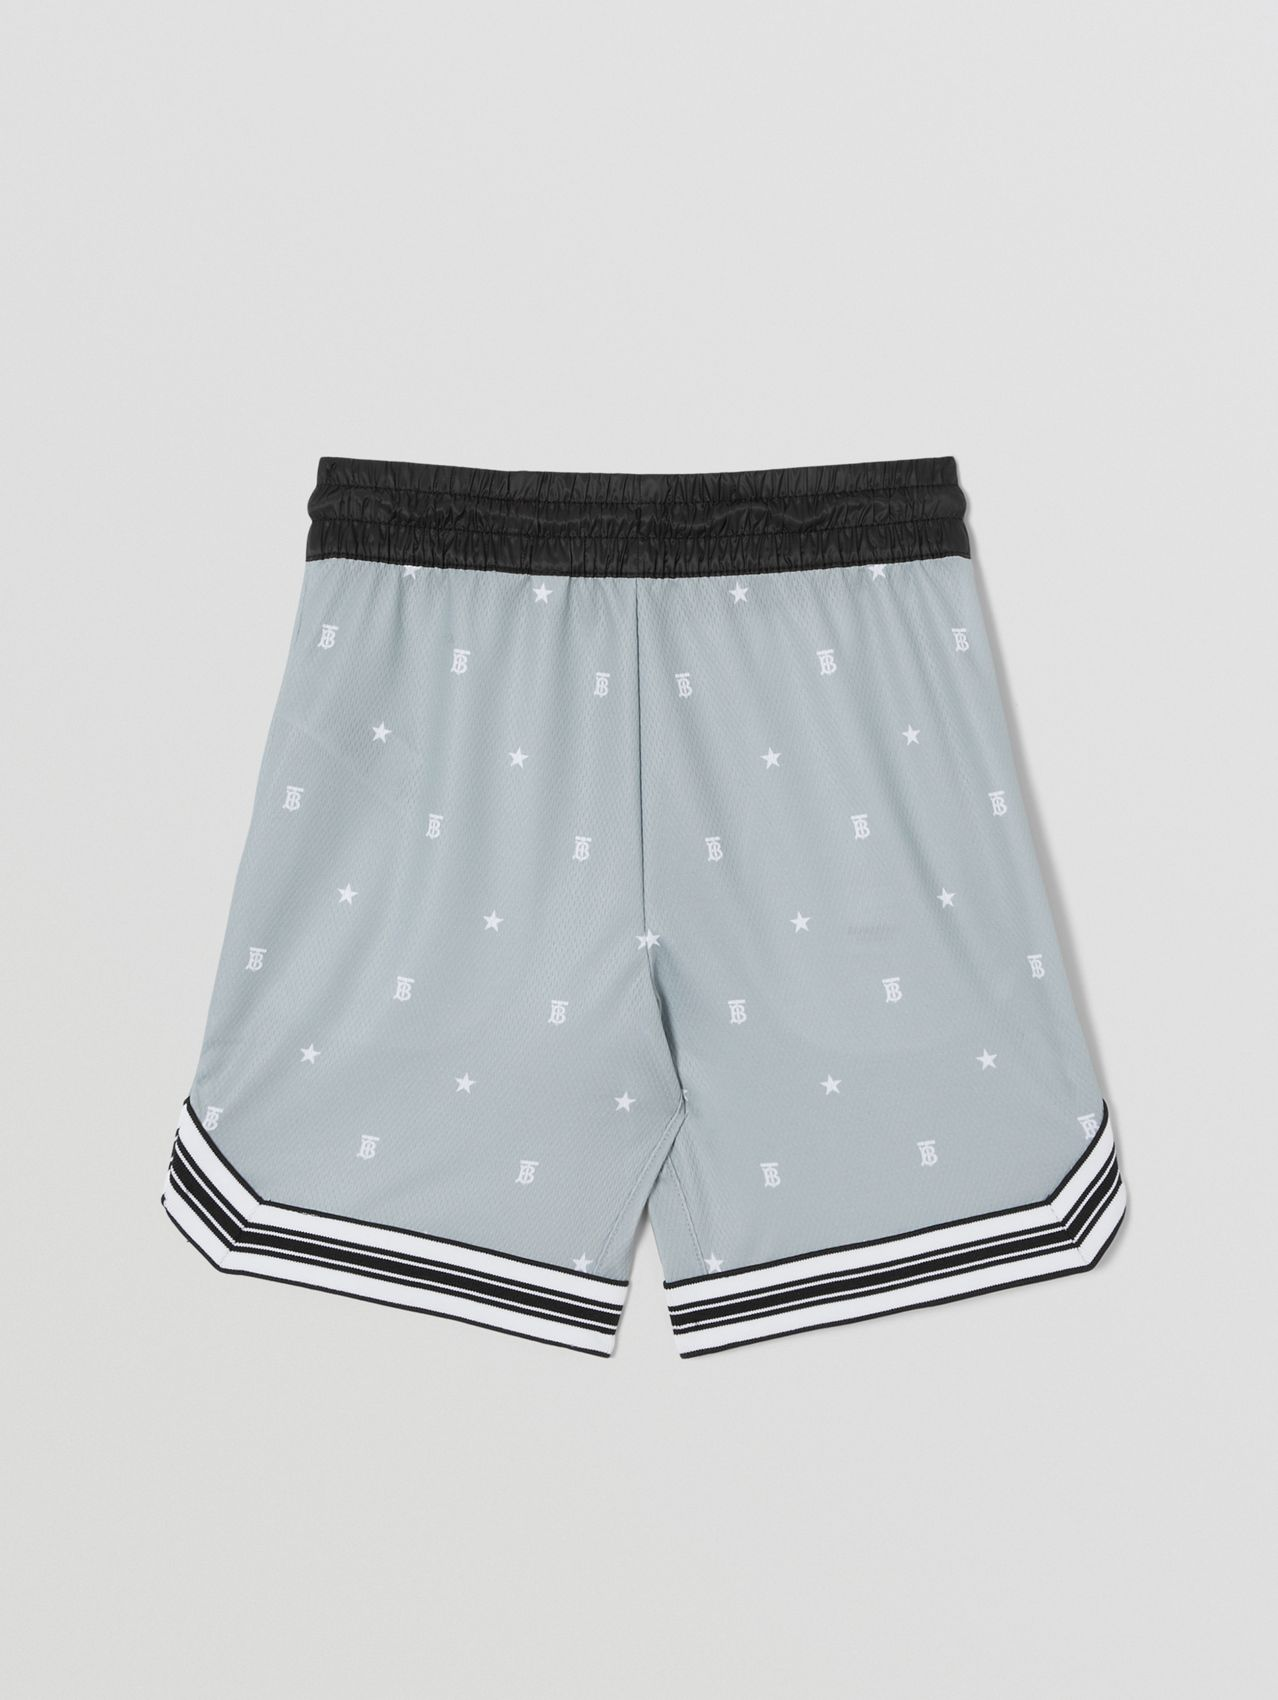 Star and Monogram Motif Jersey Mesh Shorts in Light Grey